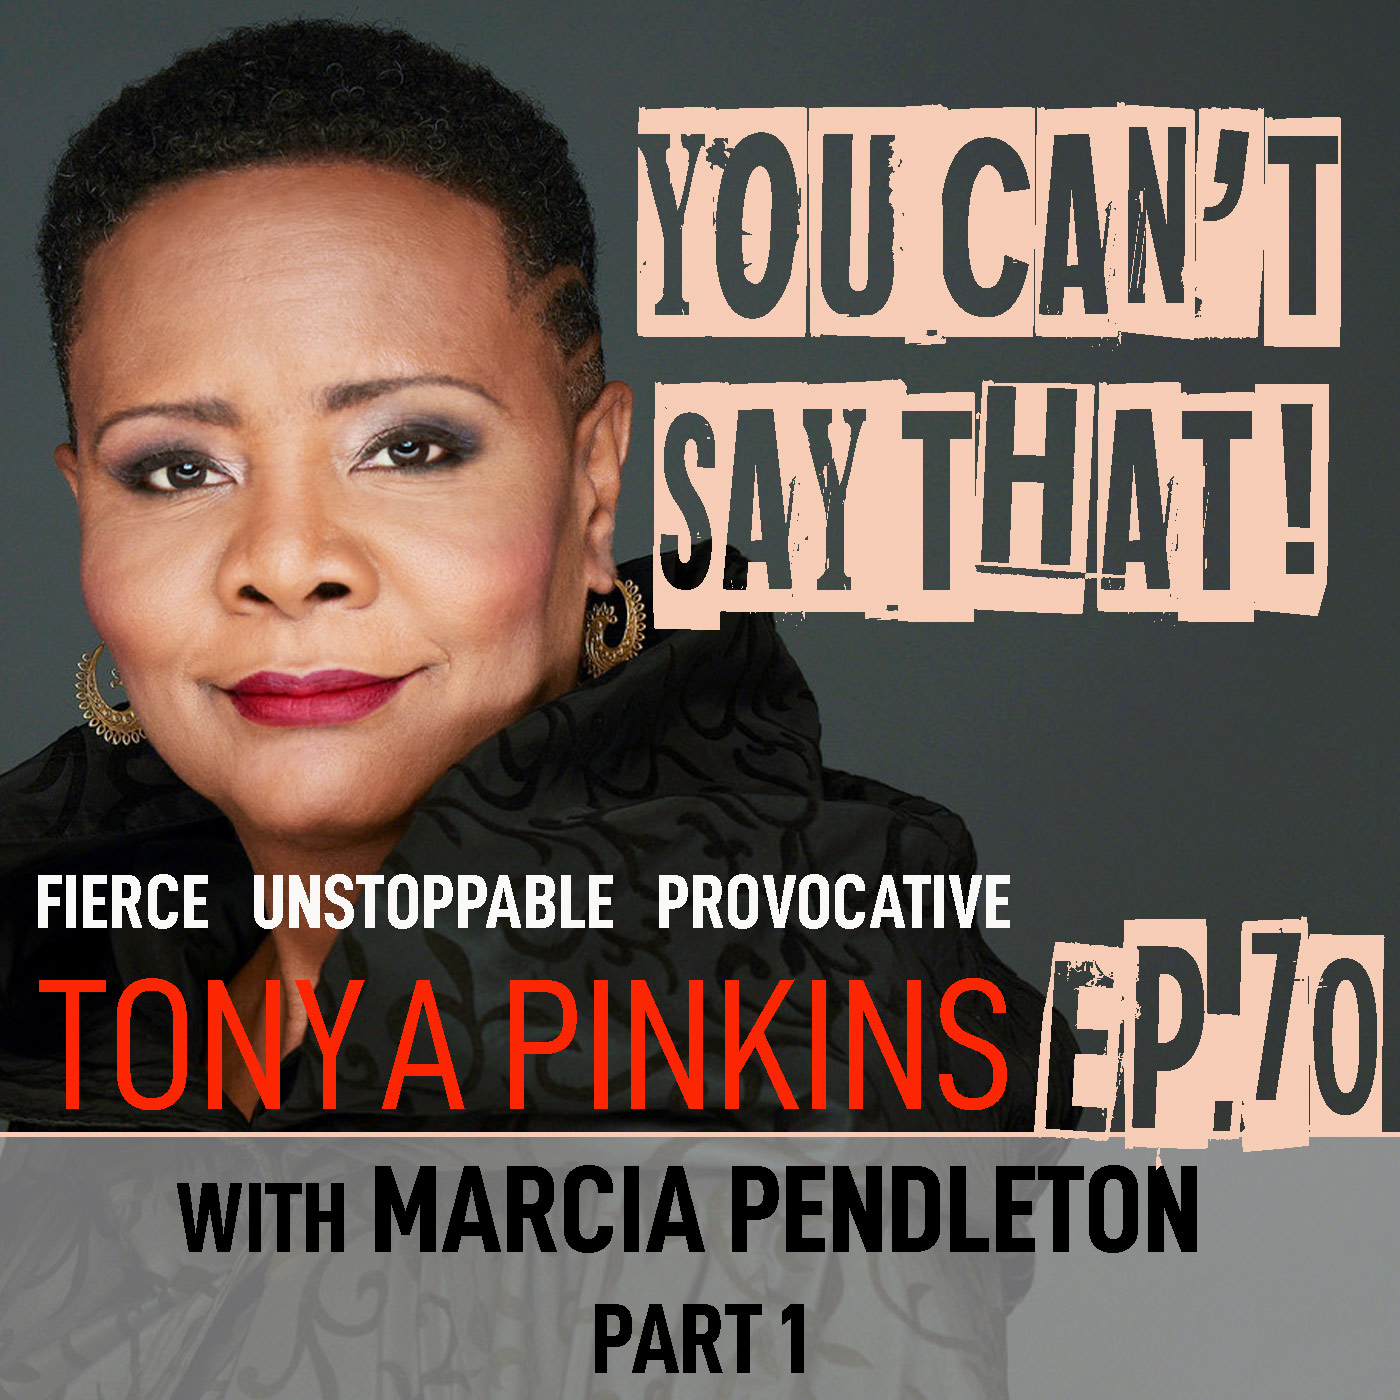 You Can't Say That Tonya Pinkins Ep70 - Marcia Pendleton (Part 1)